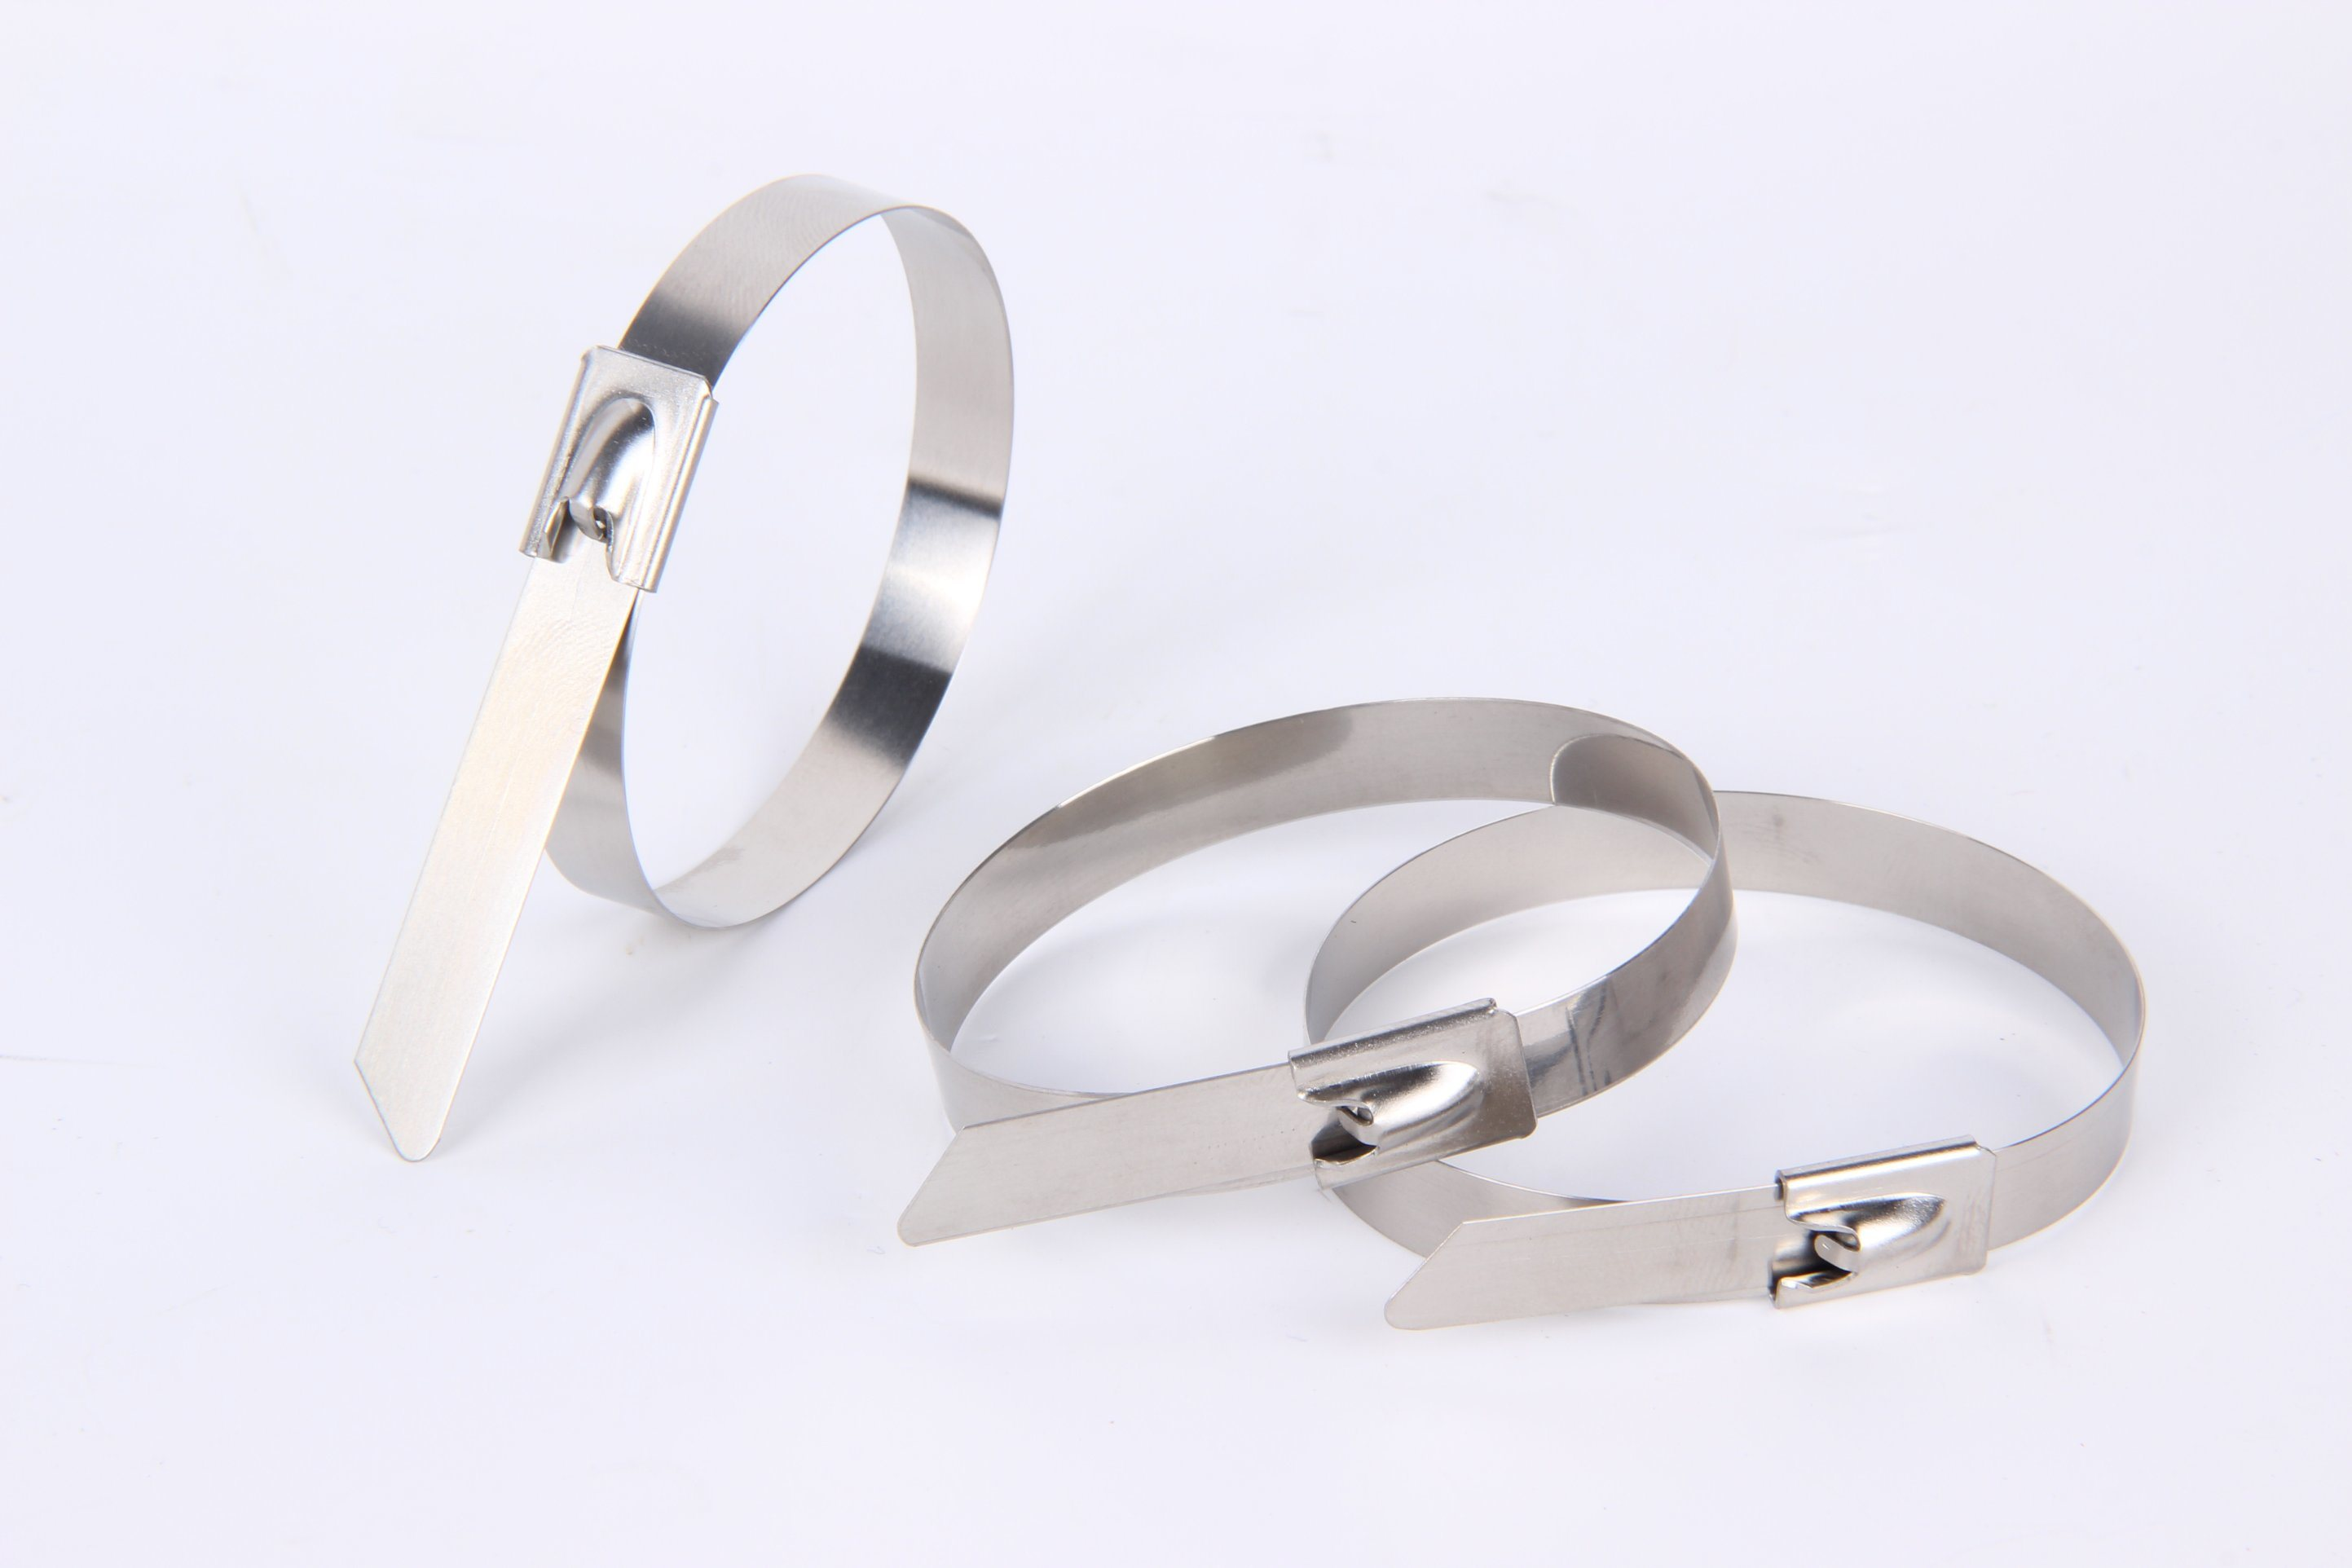 201 304 316 Ball Lock Polyester Coated Stainless Steel Cable Tie